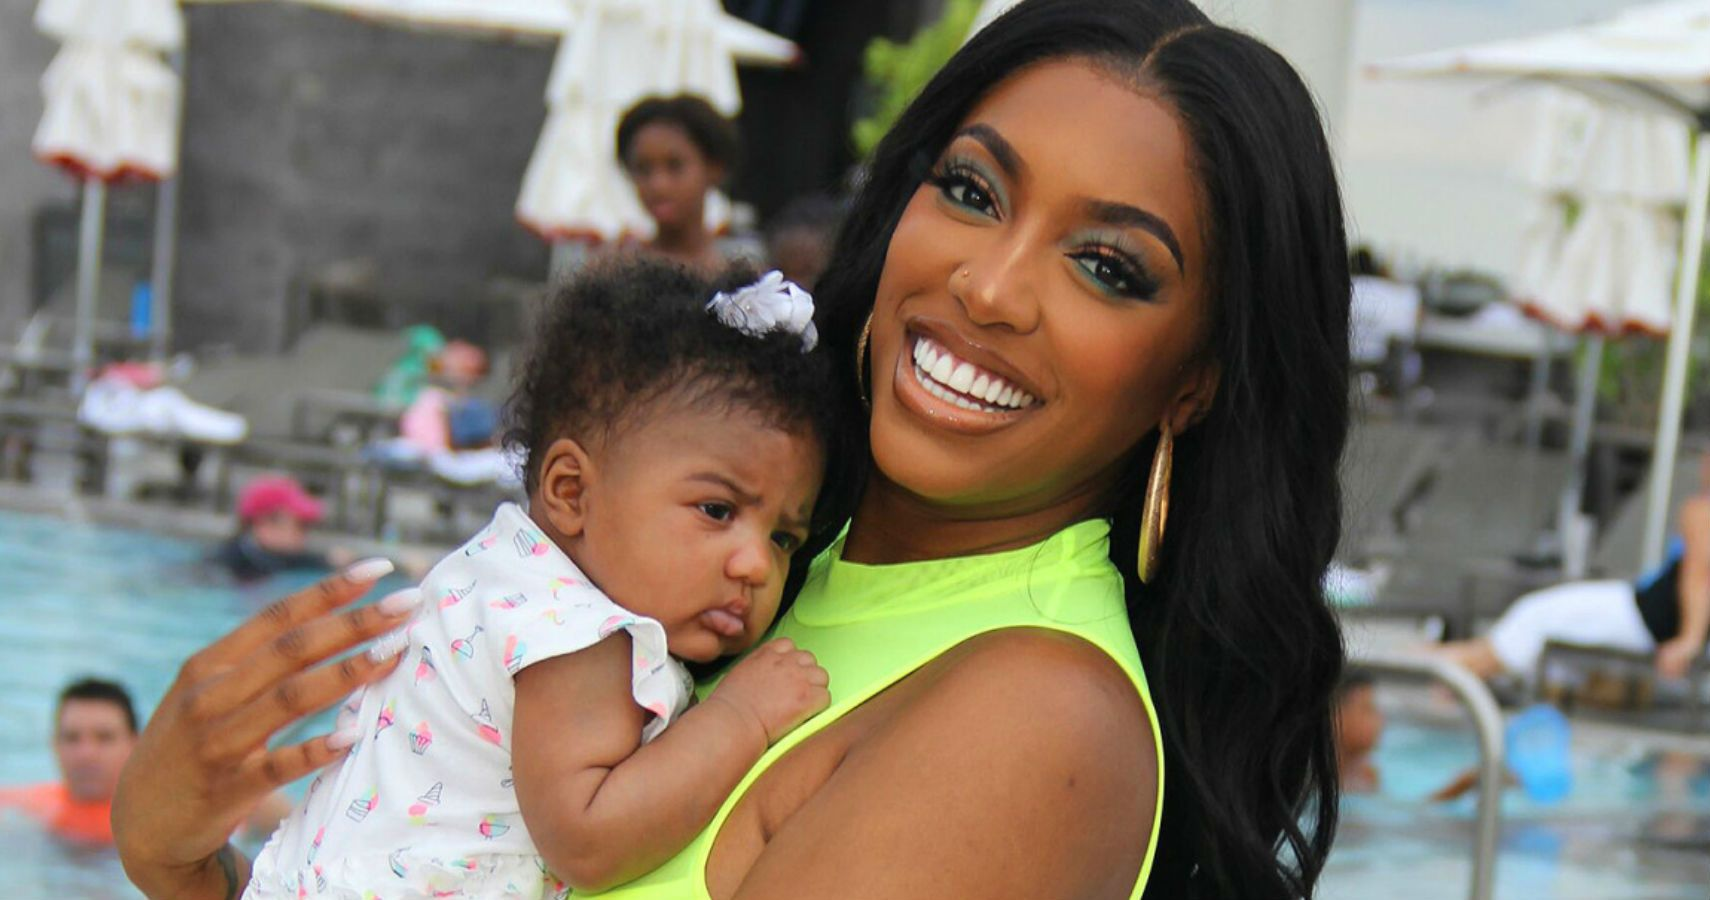 Porsha Williams' New Photo Of Baby Pilar Jhena Gives Shamea Morton Britney Spears Vibes!